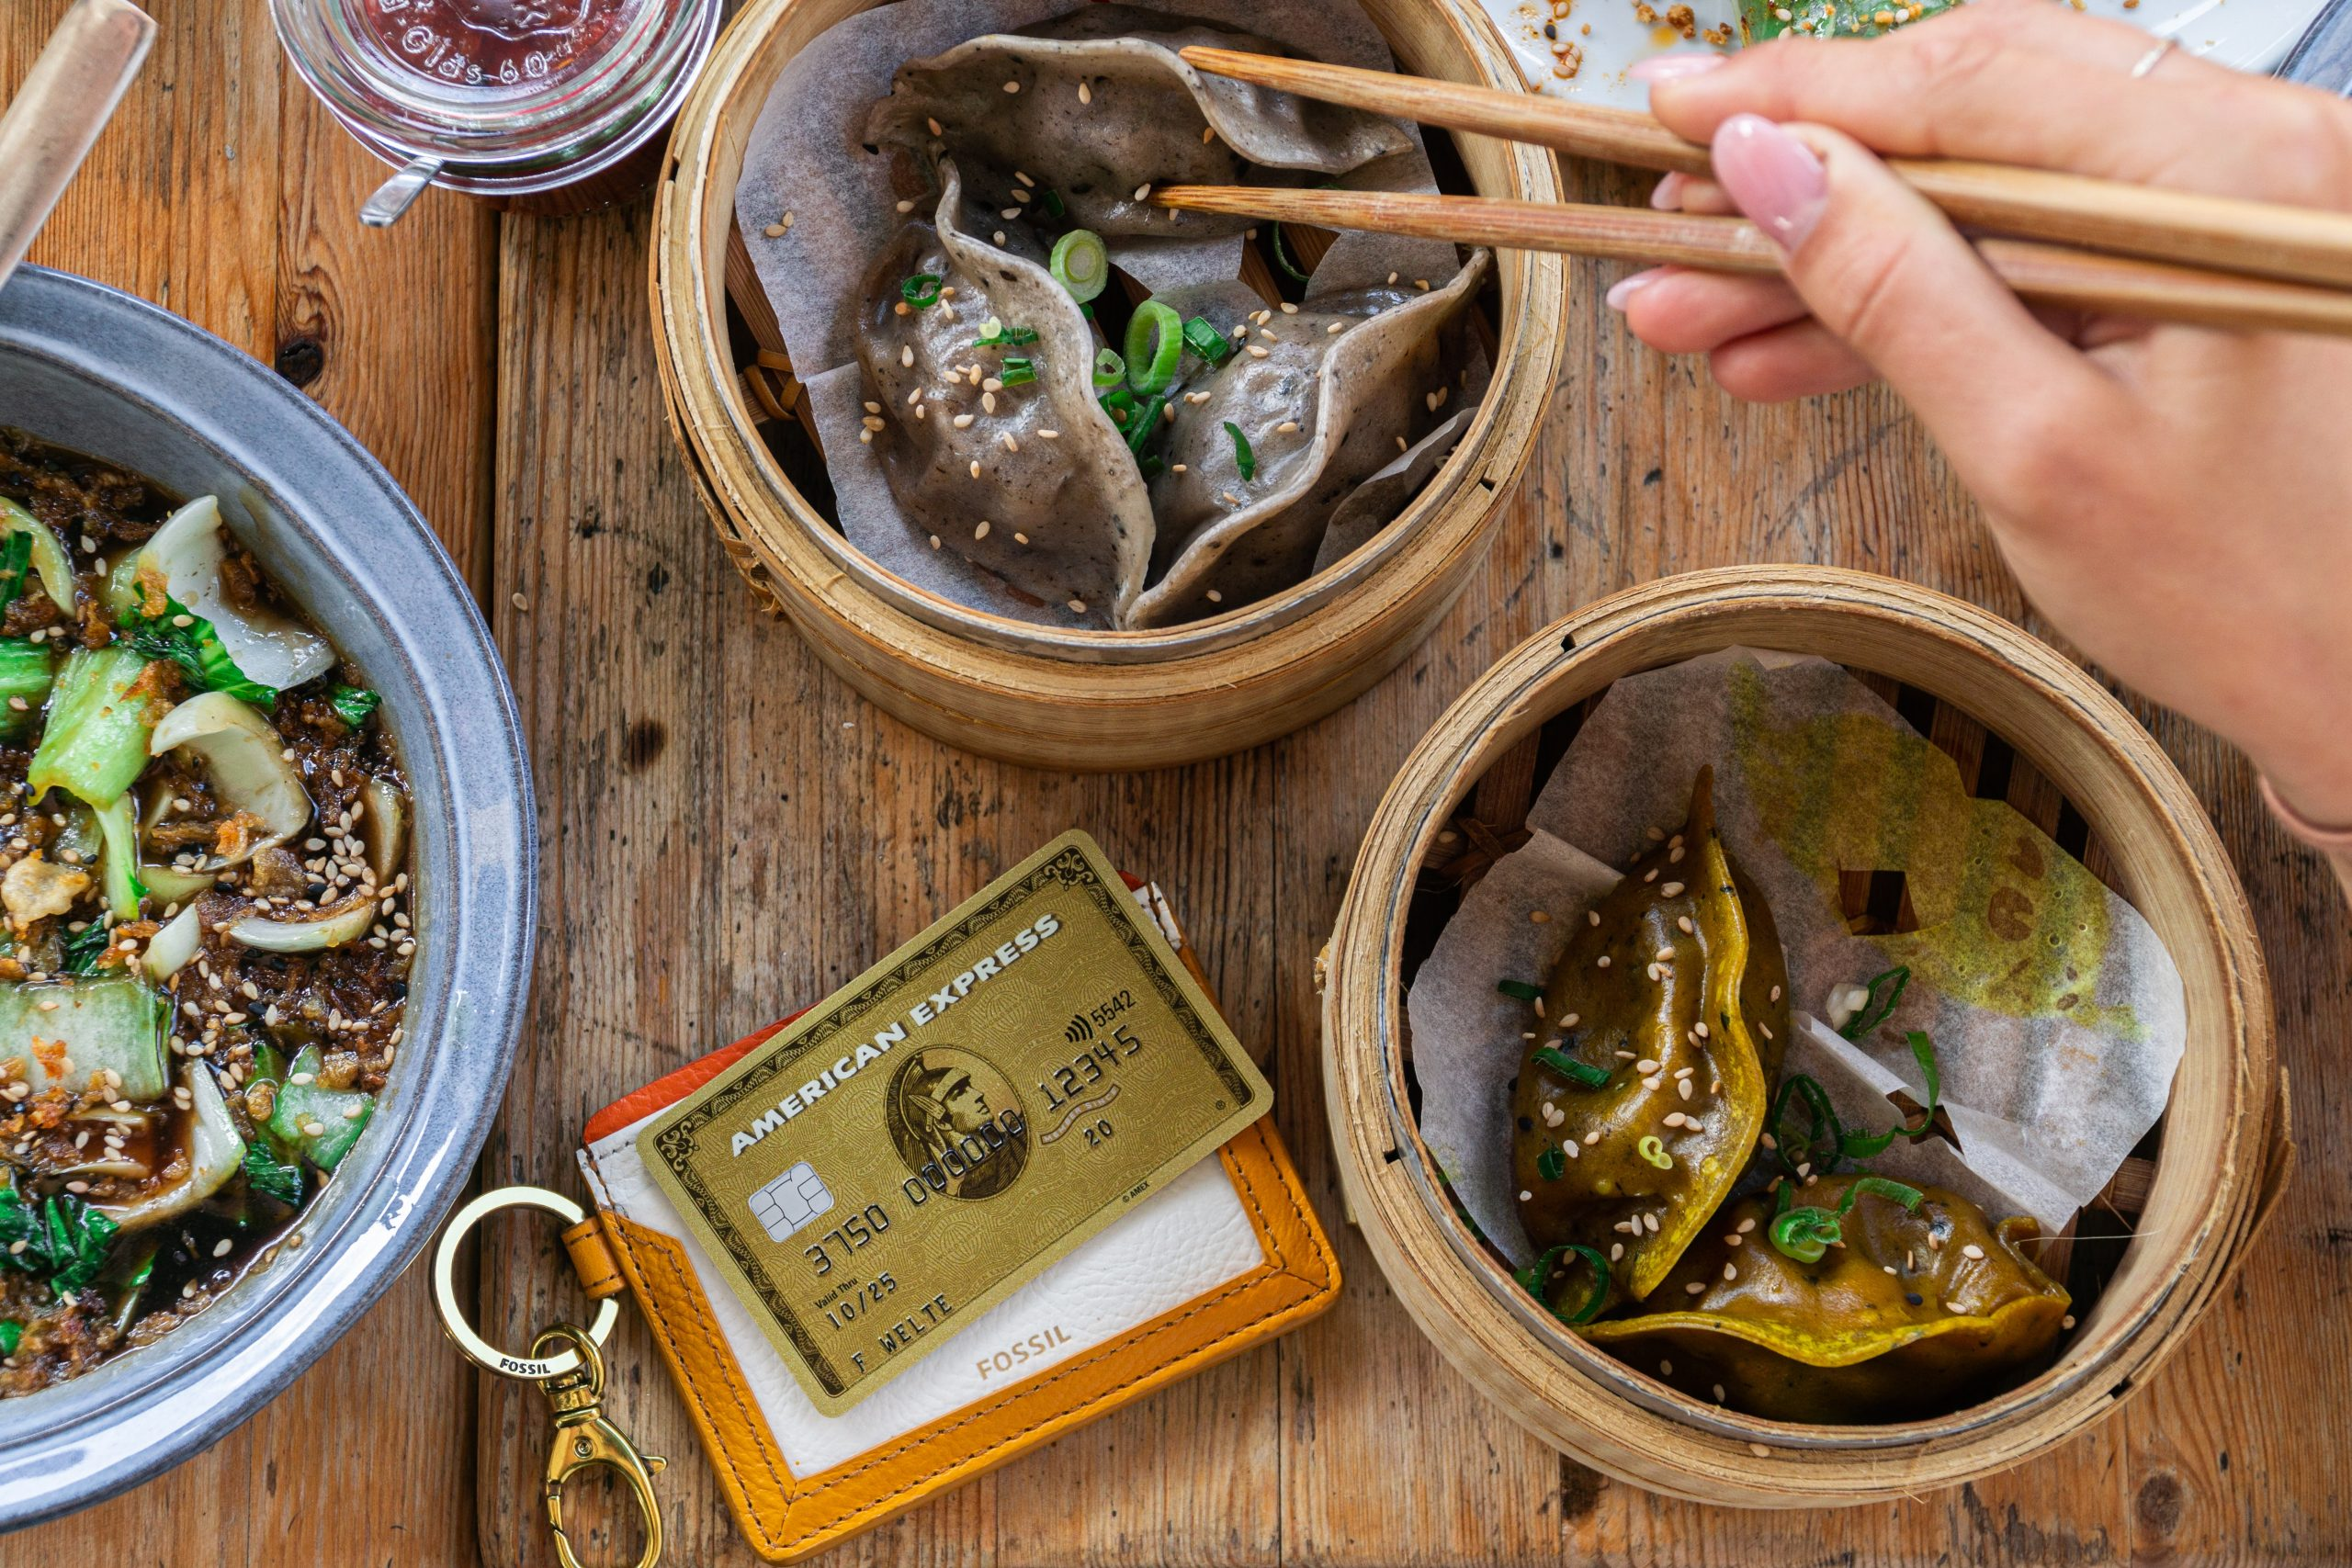 dim sums and amex credit card at Some Dim Sum